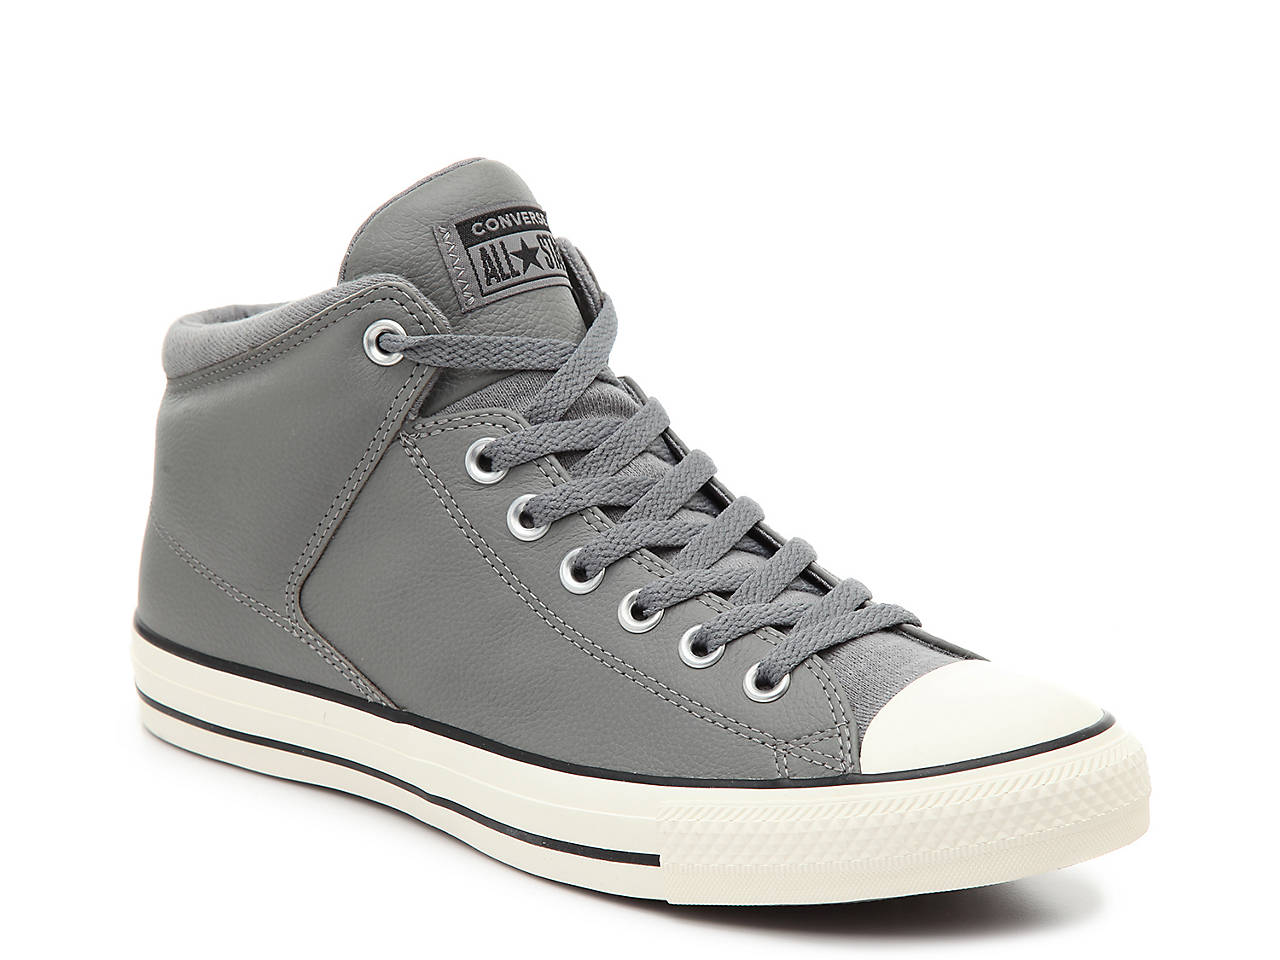 78da4101f099 Converse. Chuck Taylor All Star Hi Street Leather High-Top Sneaker - Men s